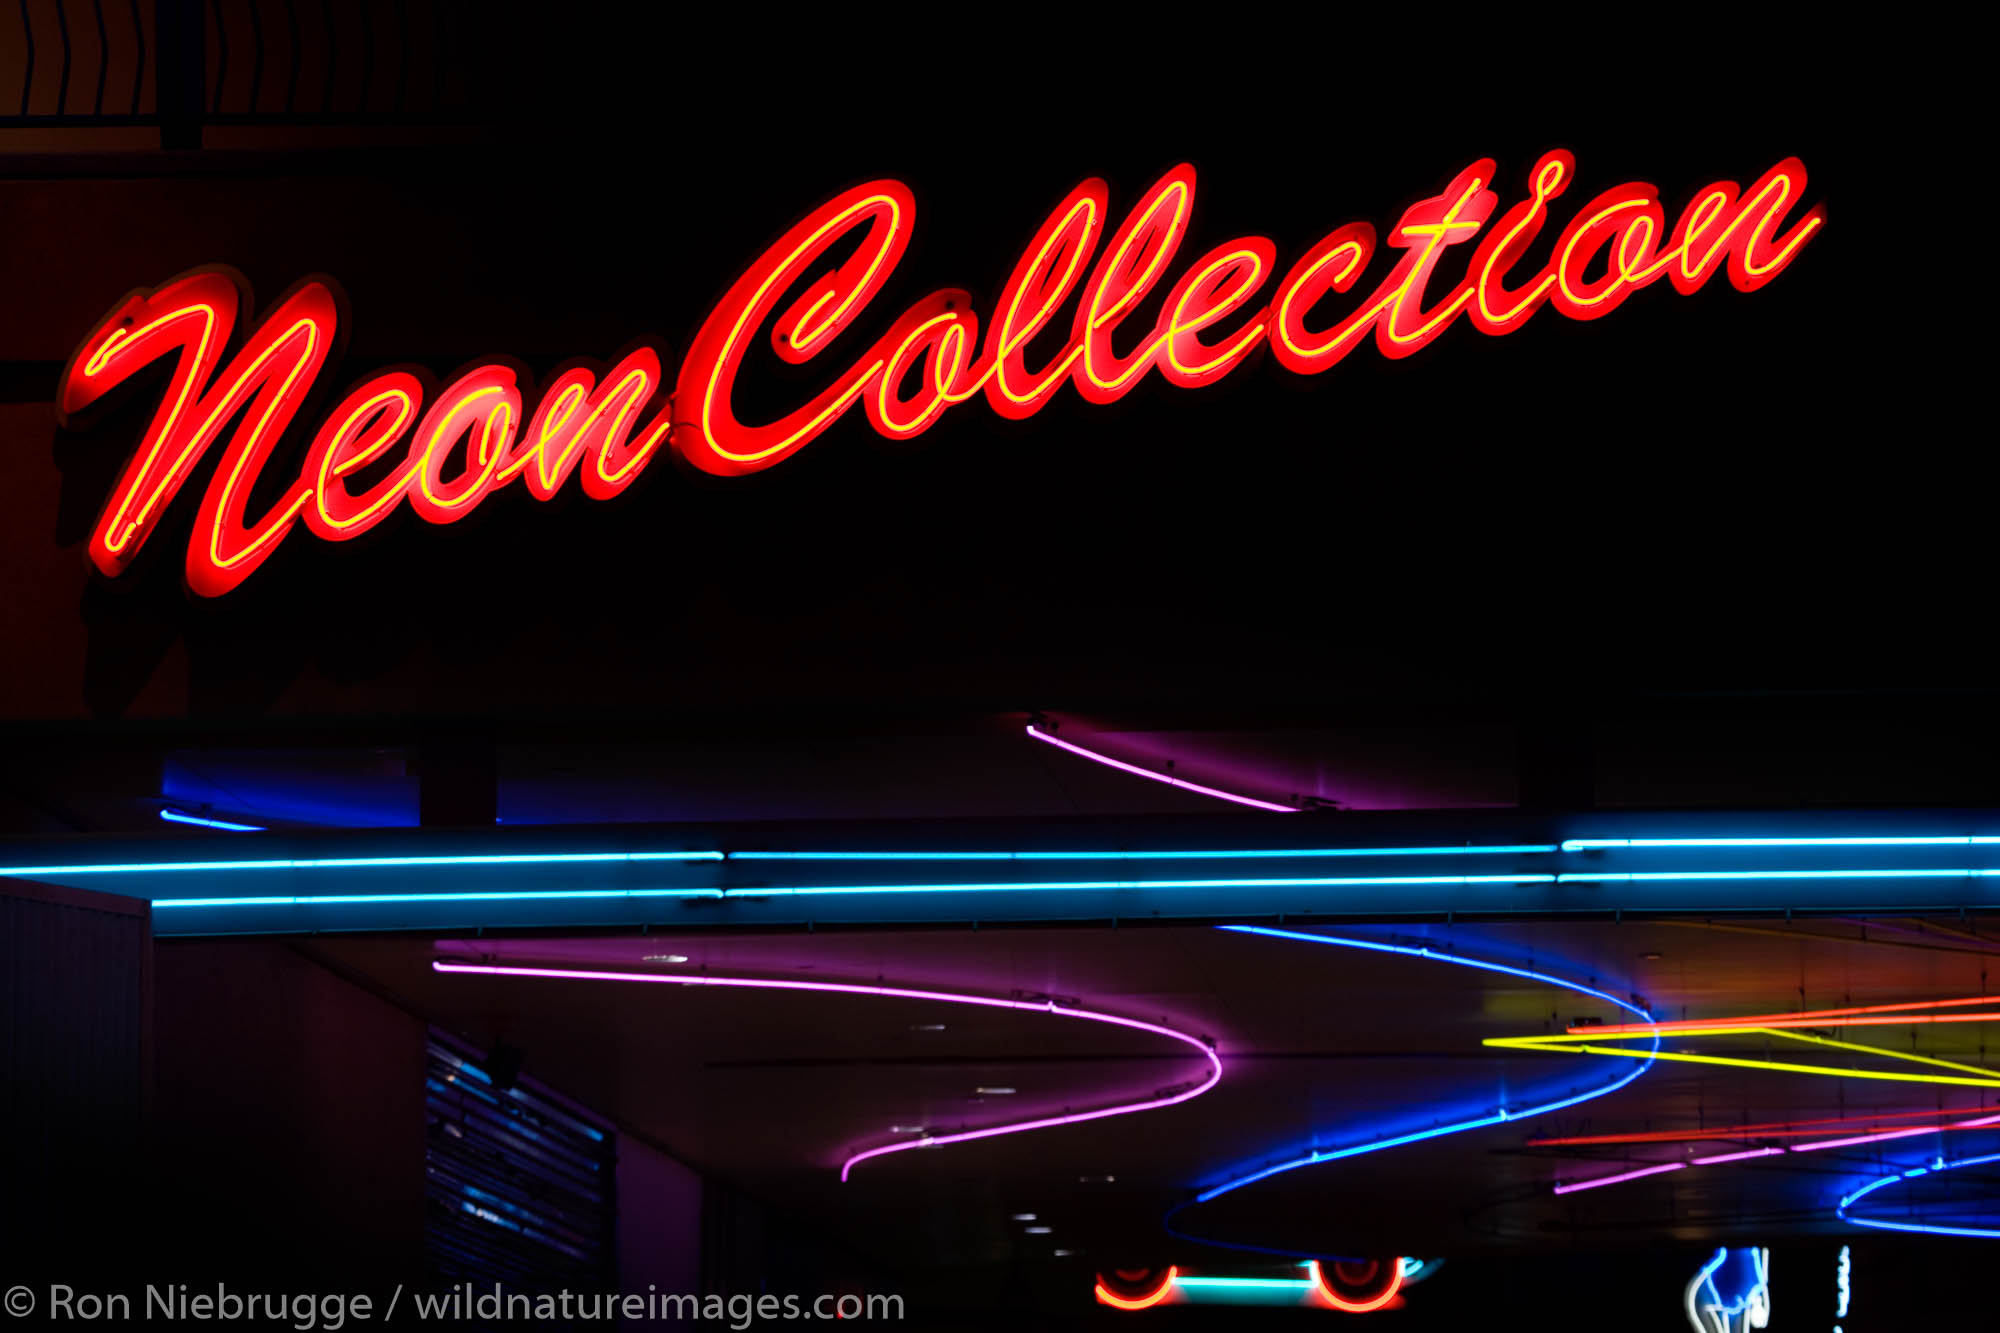 Neon Collections sign, downtown Las Vegas, Nevada.